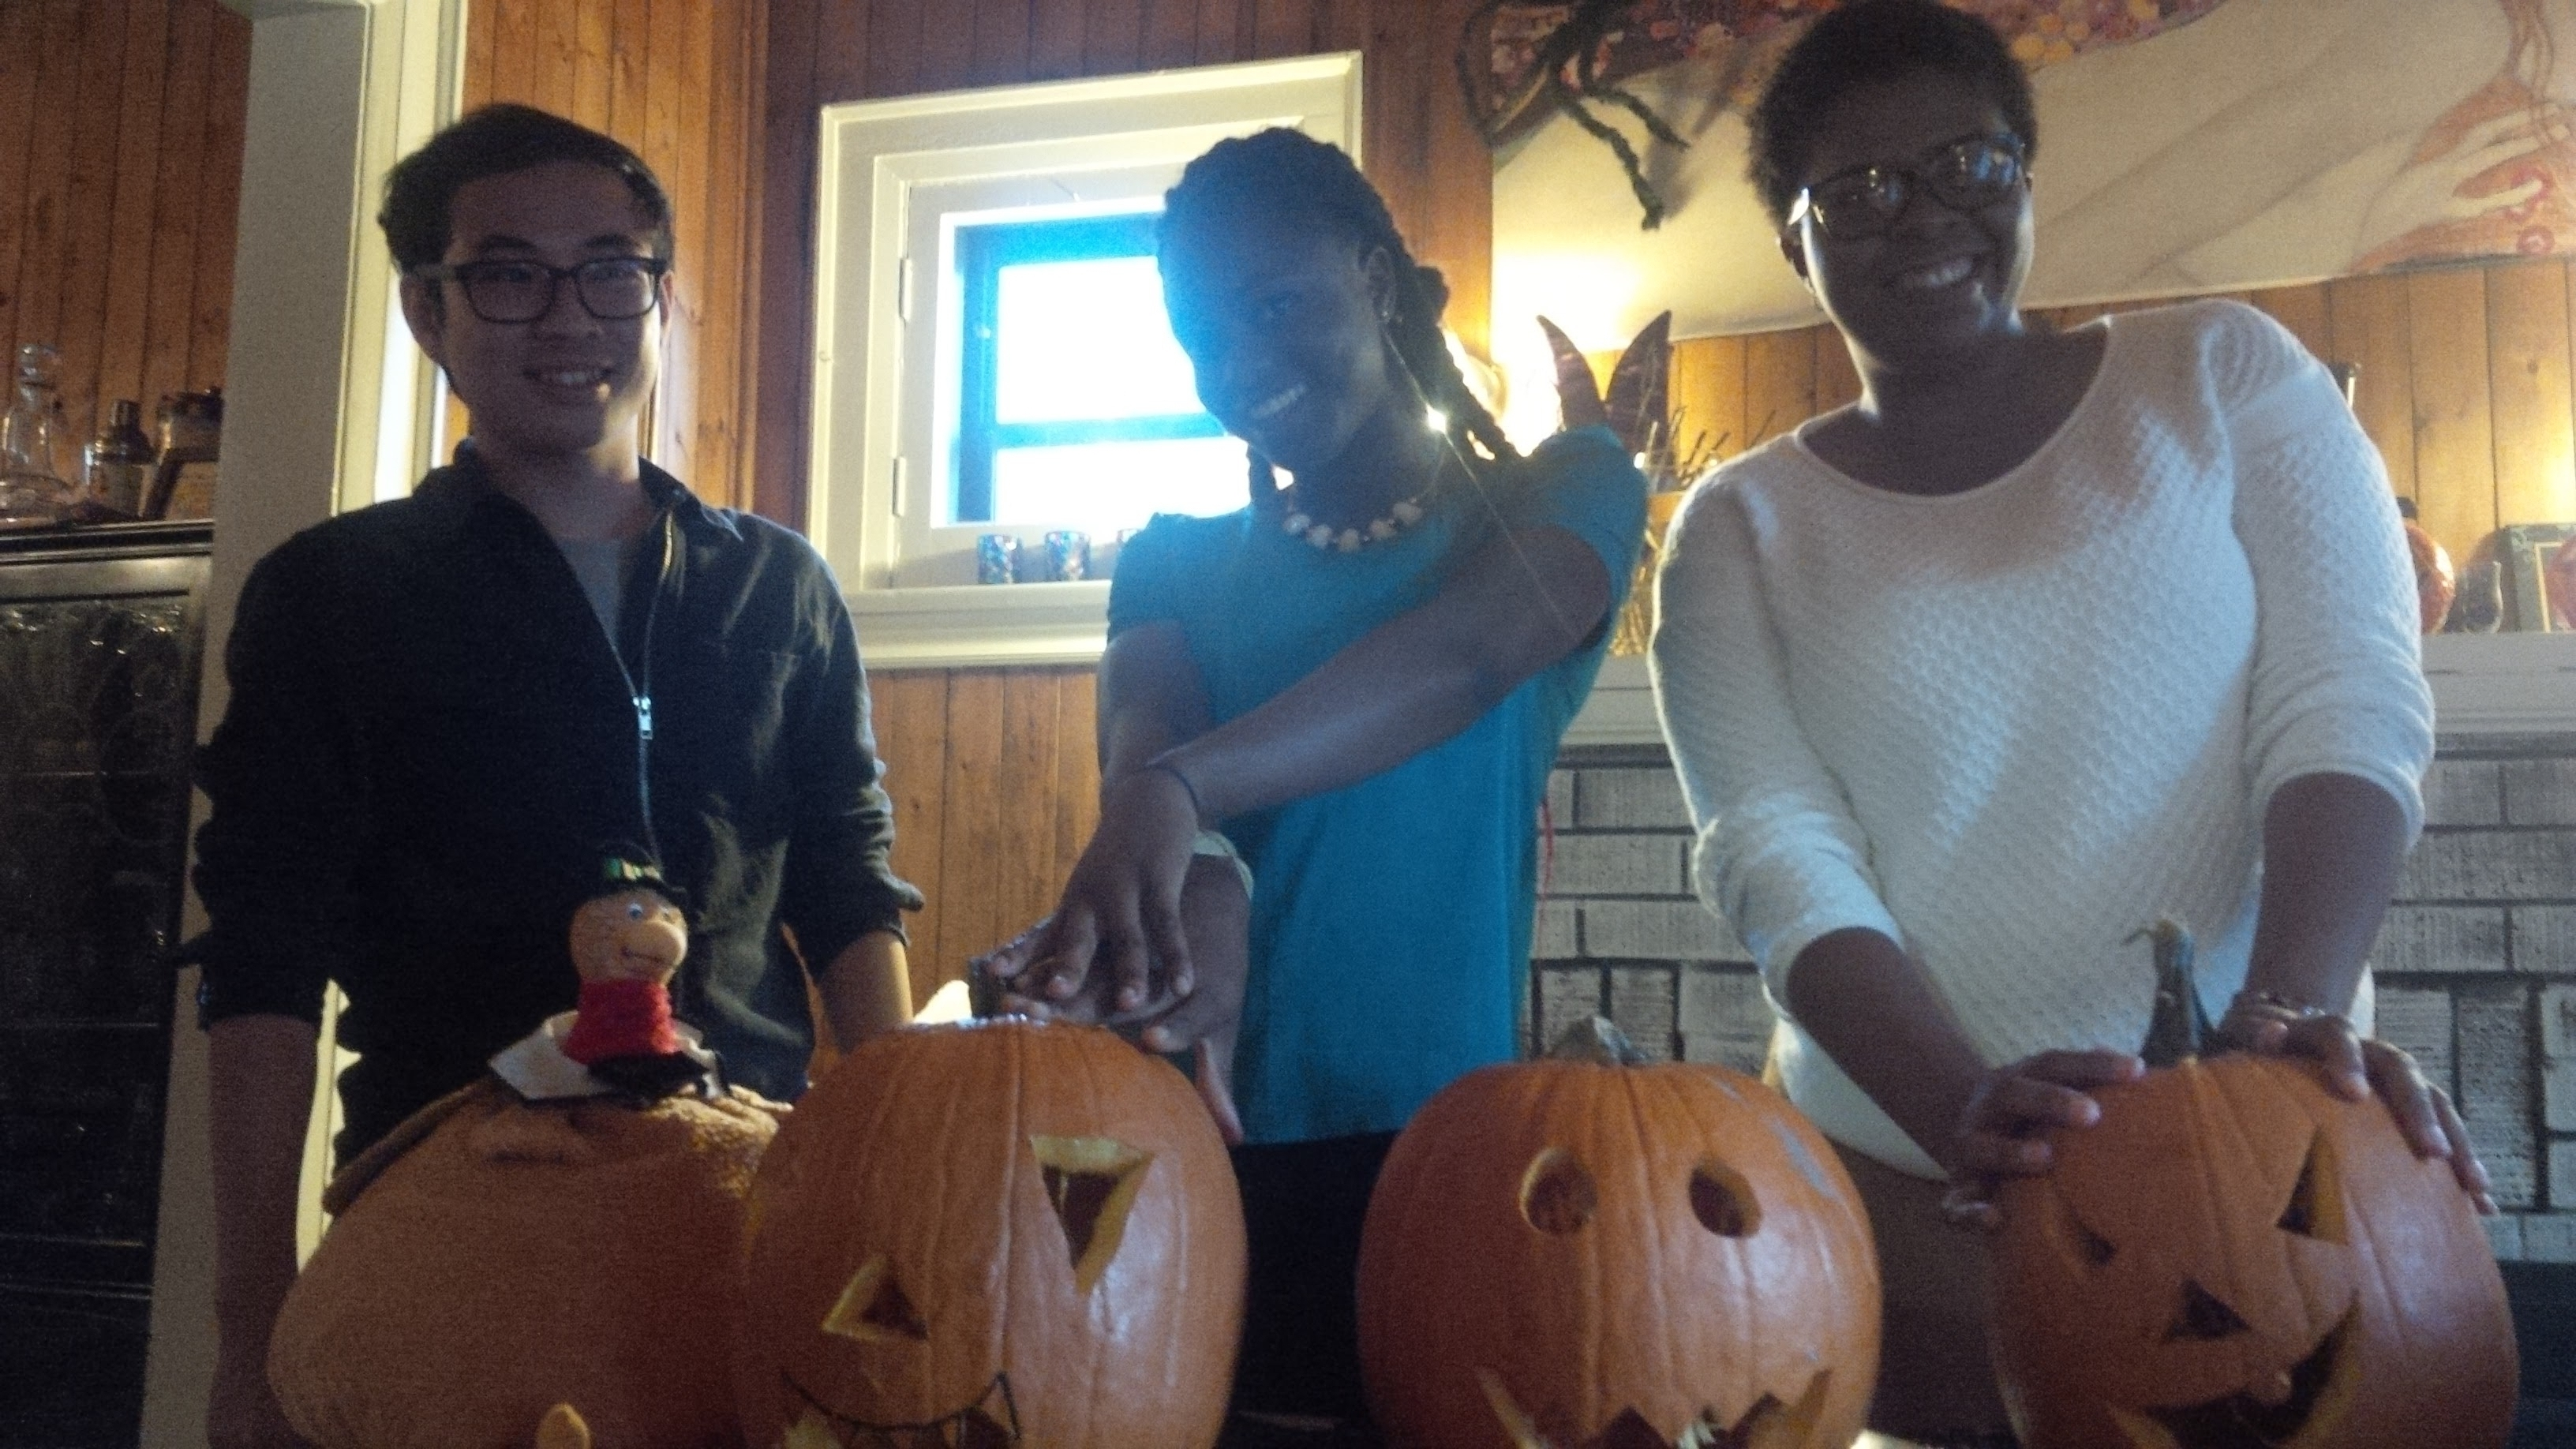 Students showing off their carved pumpkins